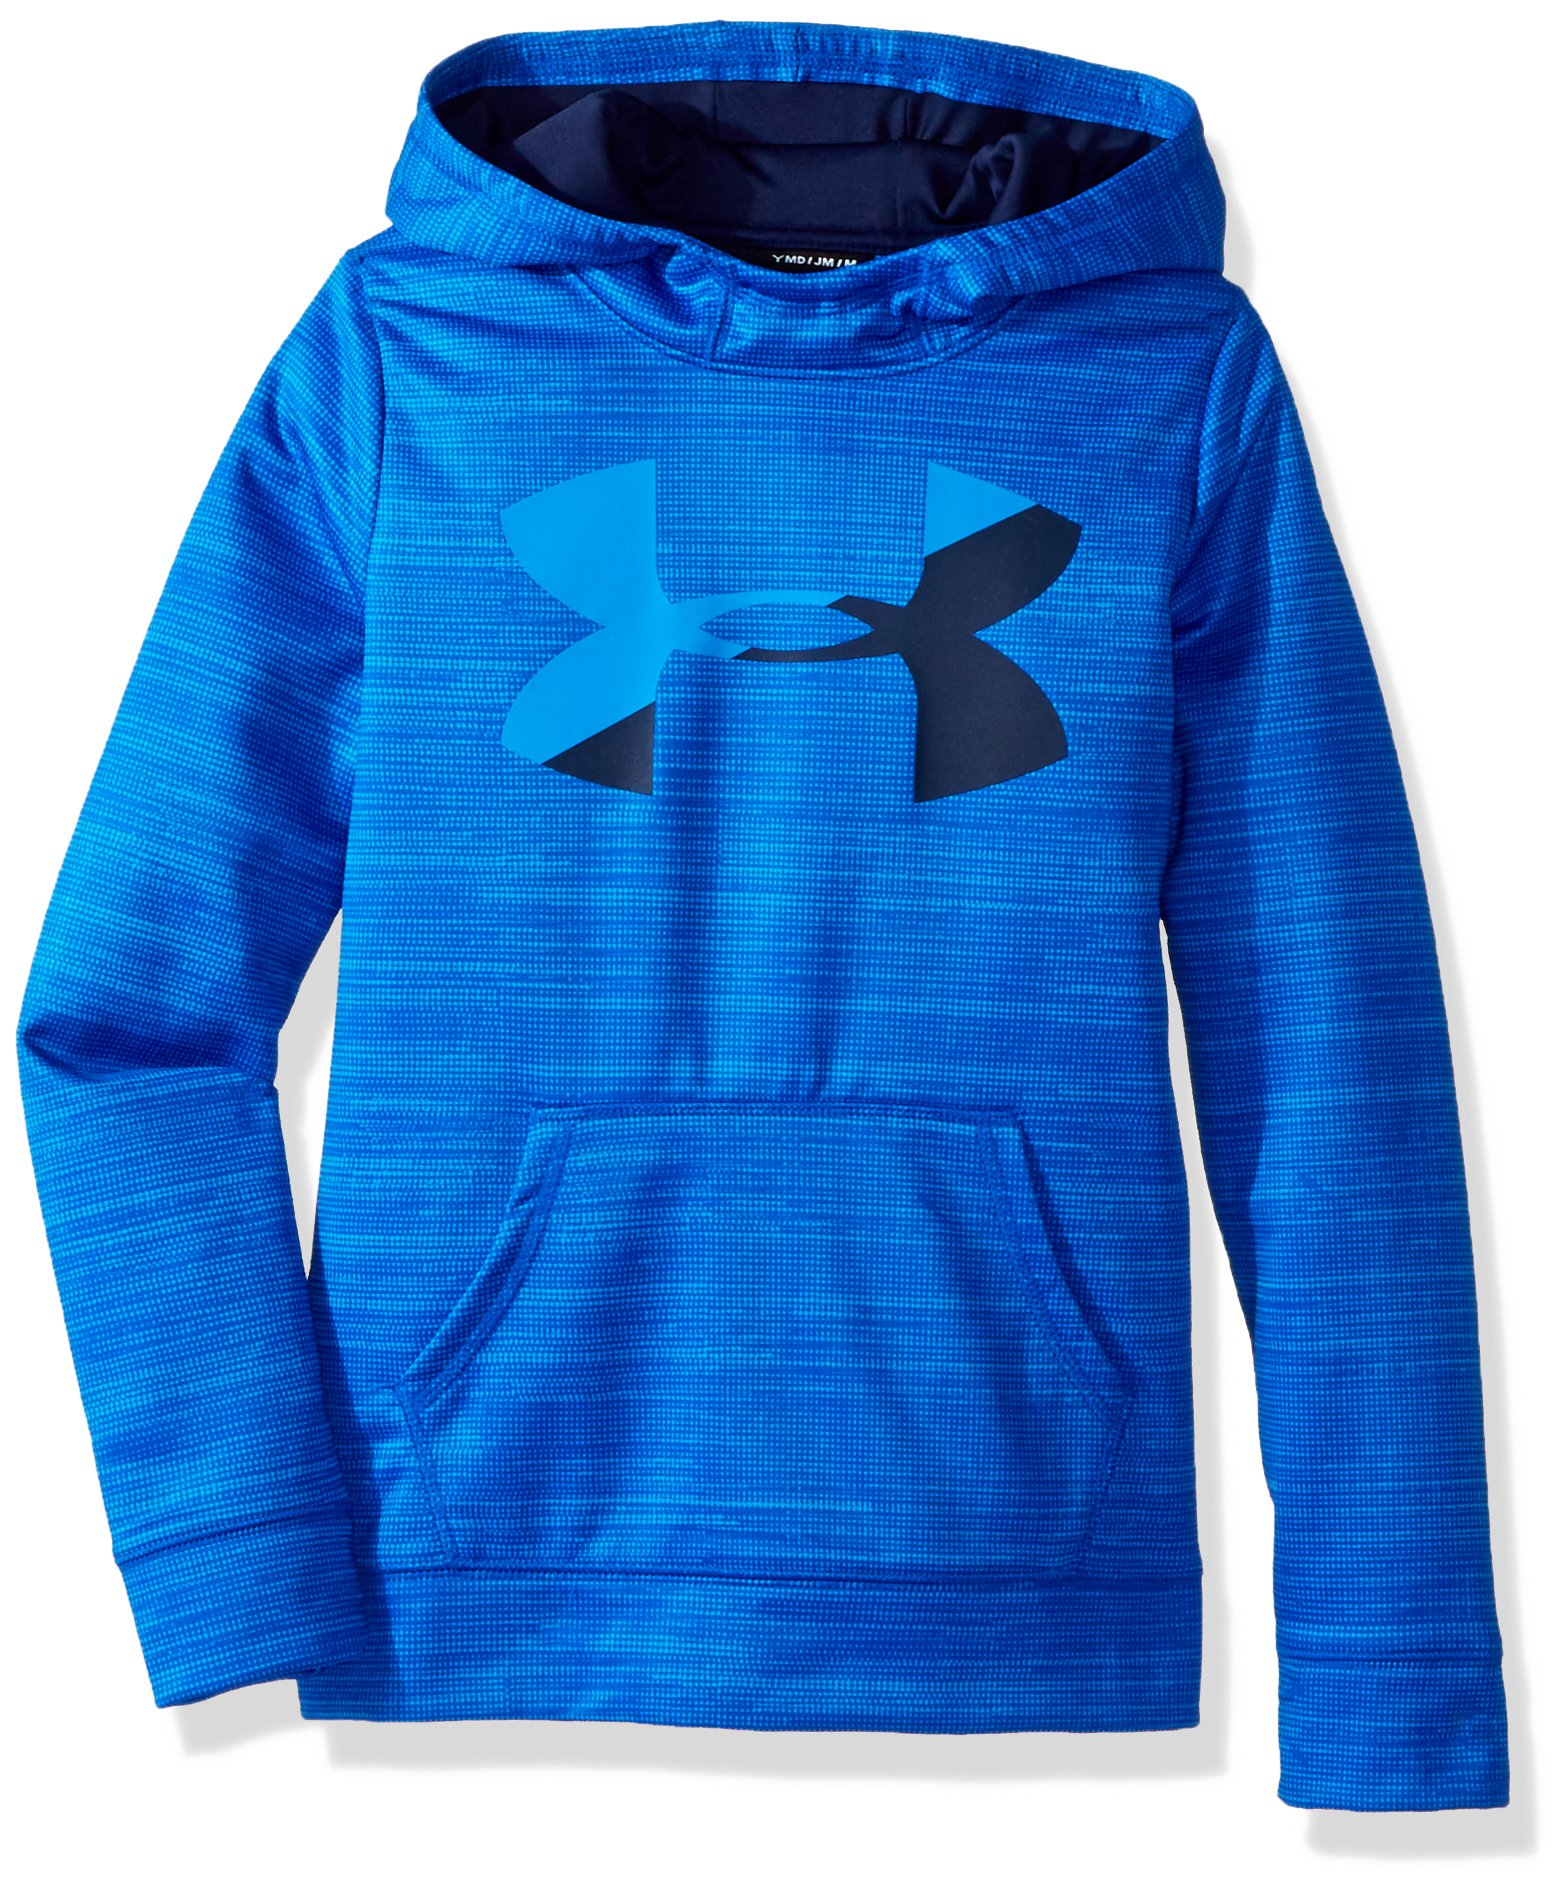 Under Armour Girls' Armour Fleece Big Logo Novelty Hoodie,Lapis Blue /Midnight Navy, Youth X-Small